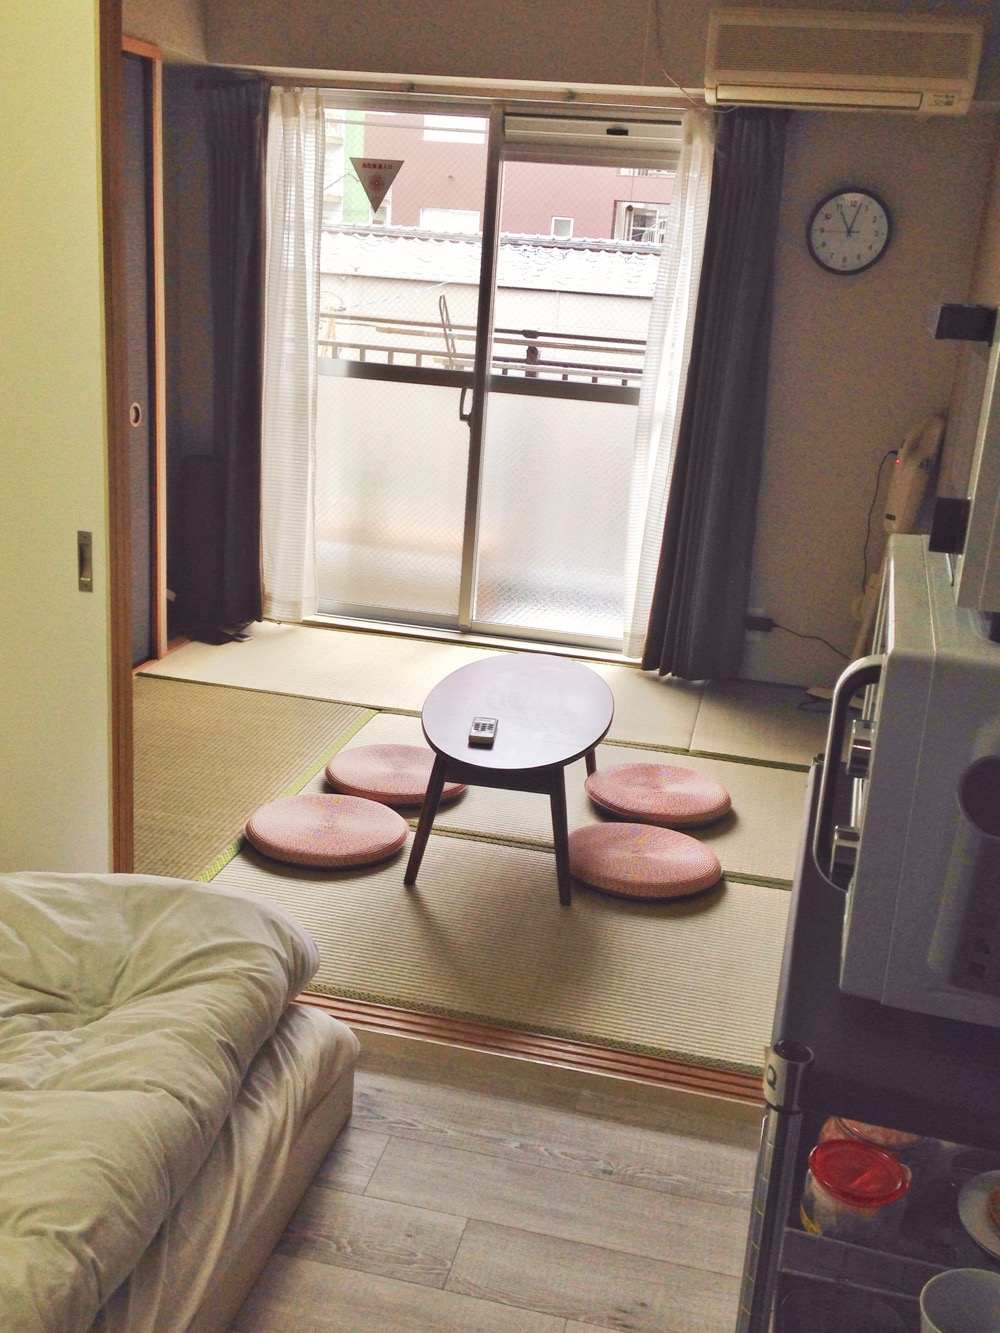 Our cute Airbnb apartment in Hiroshima